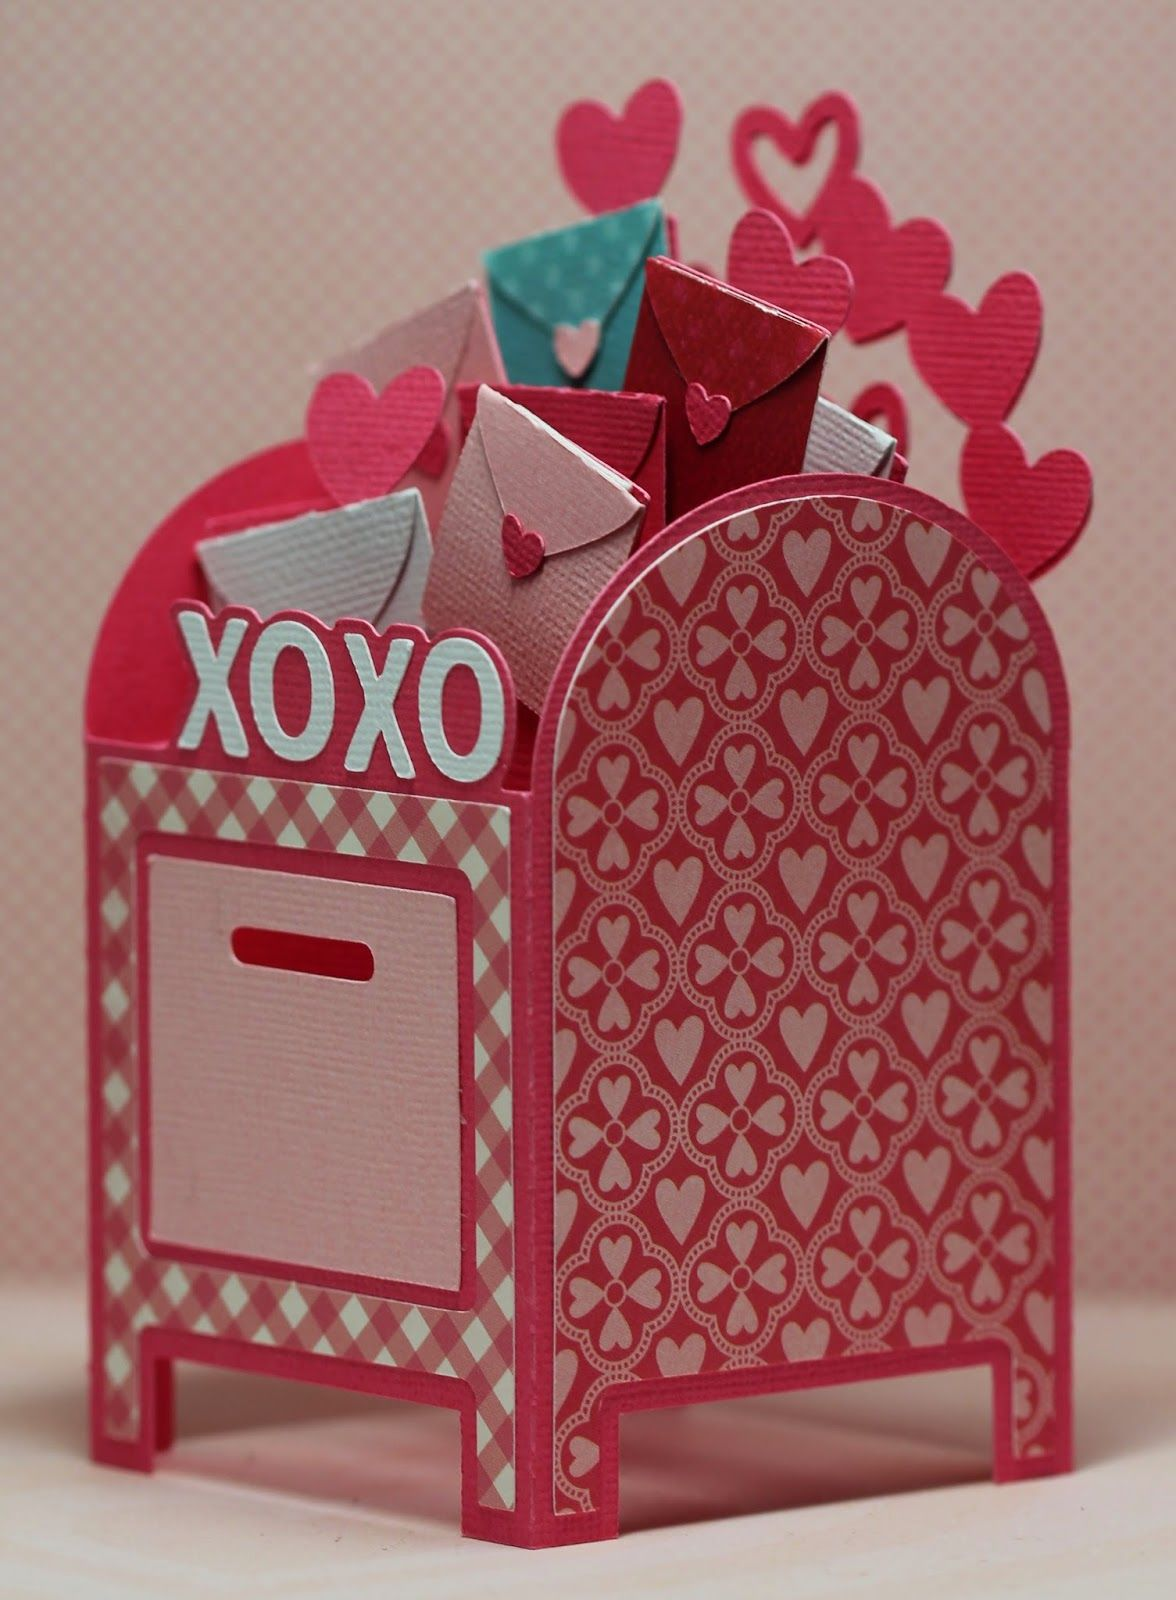 valentine's box ideas for kids | valentine's day | pinterest | cards